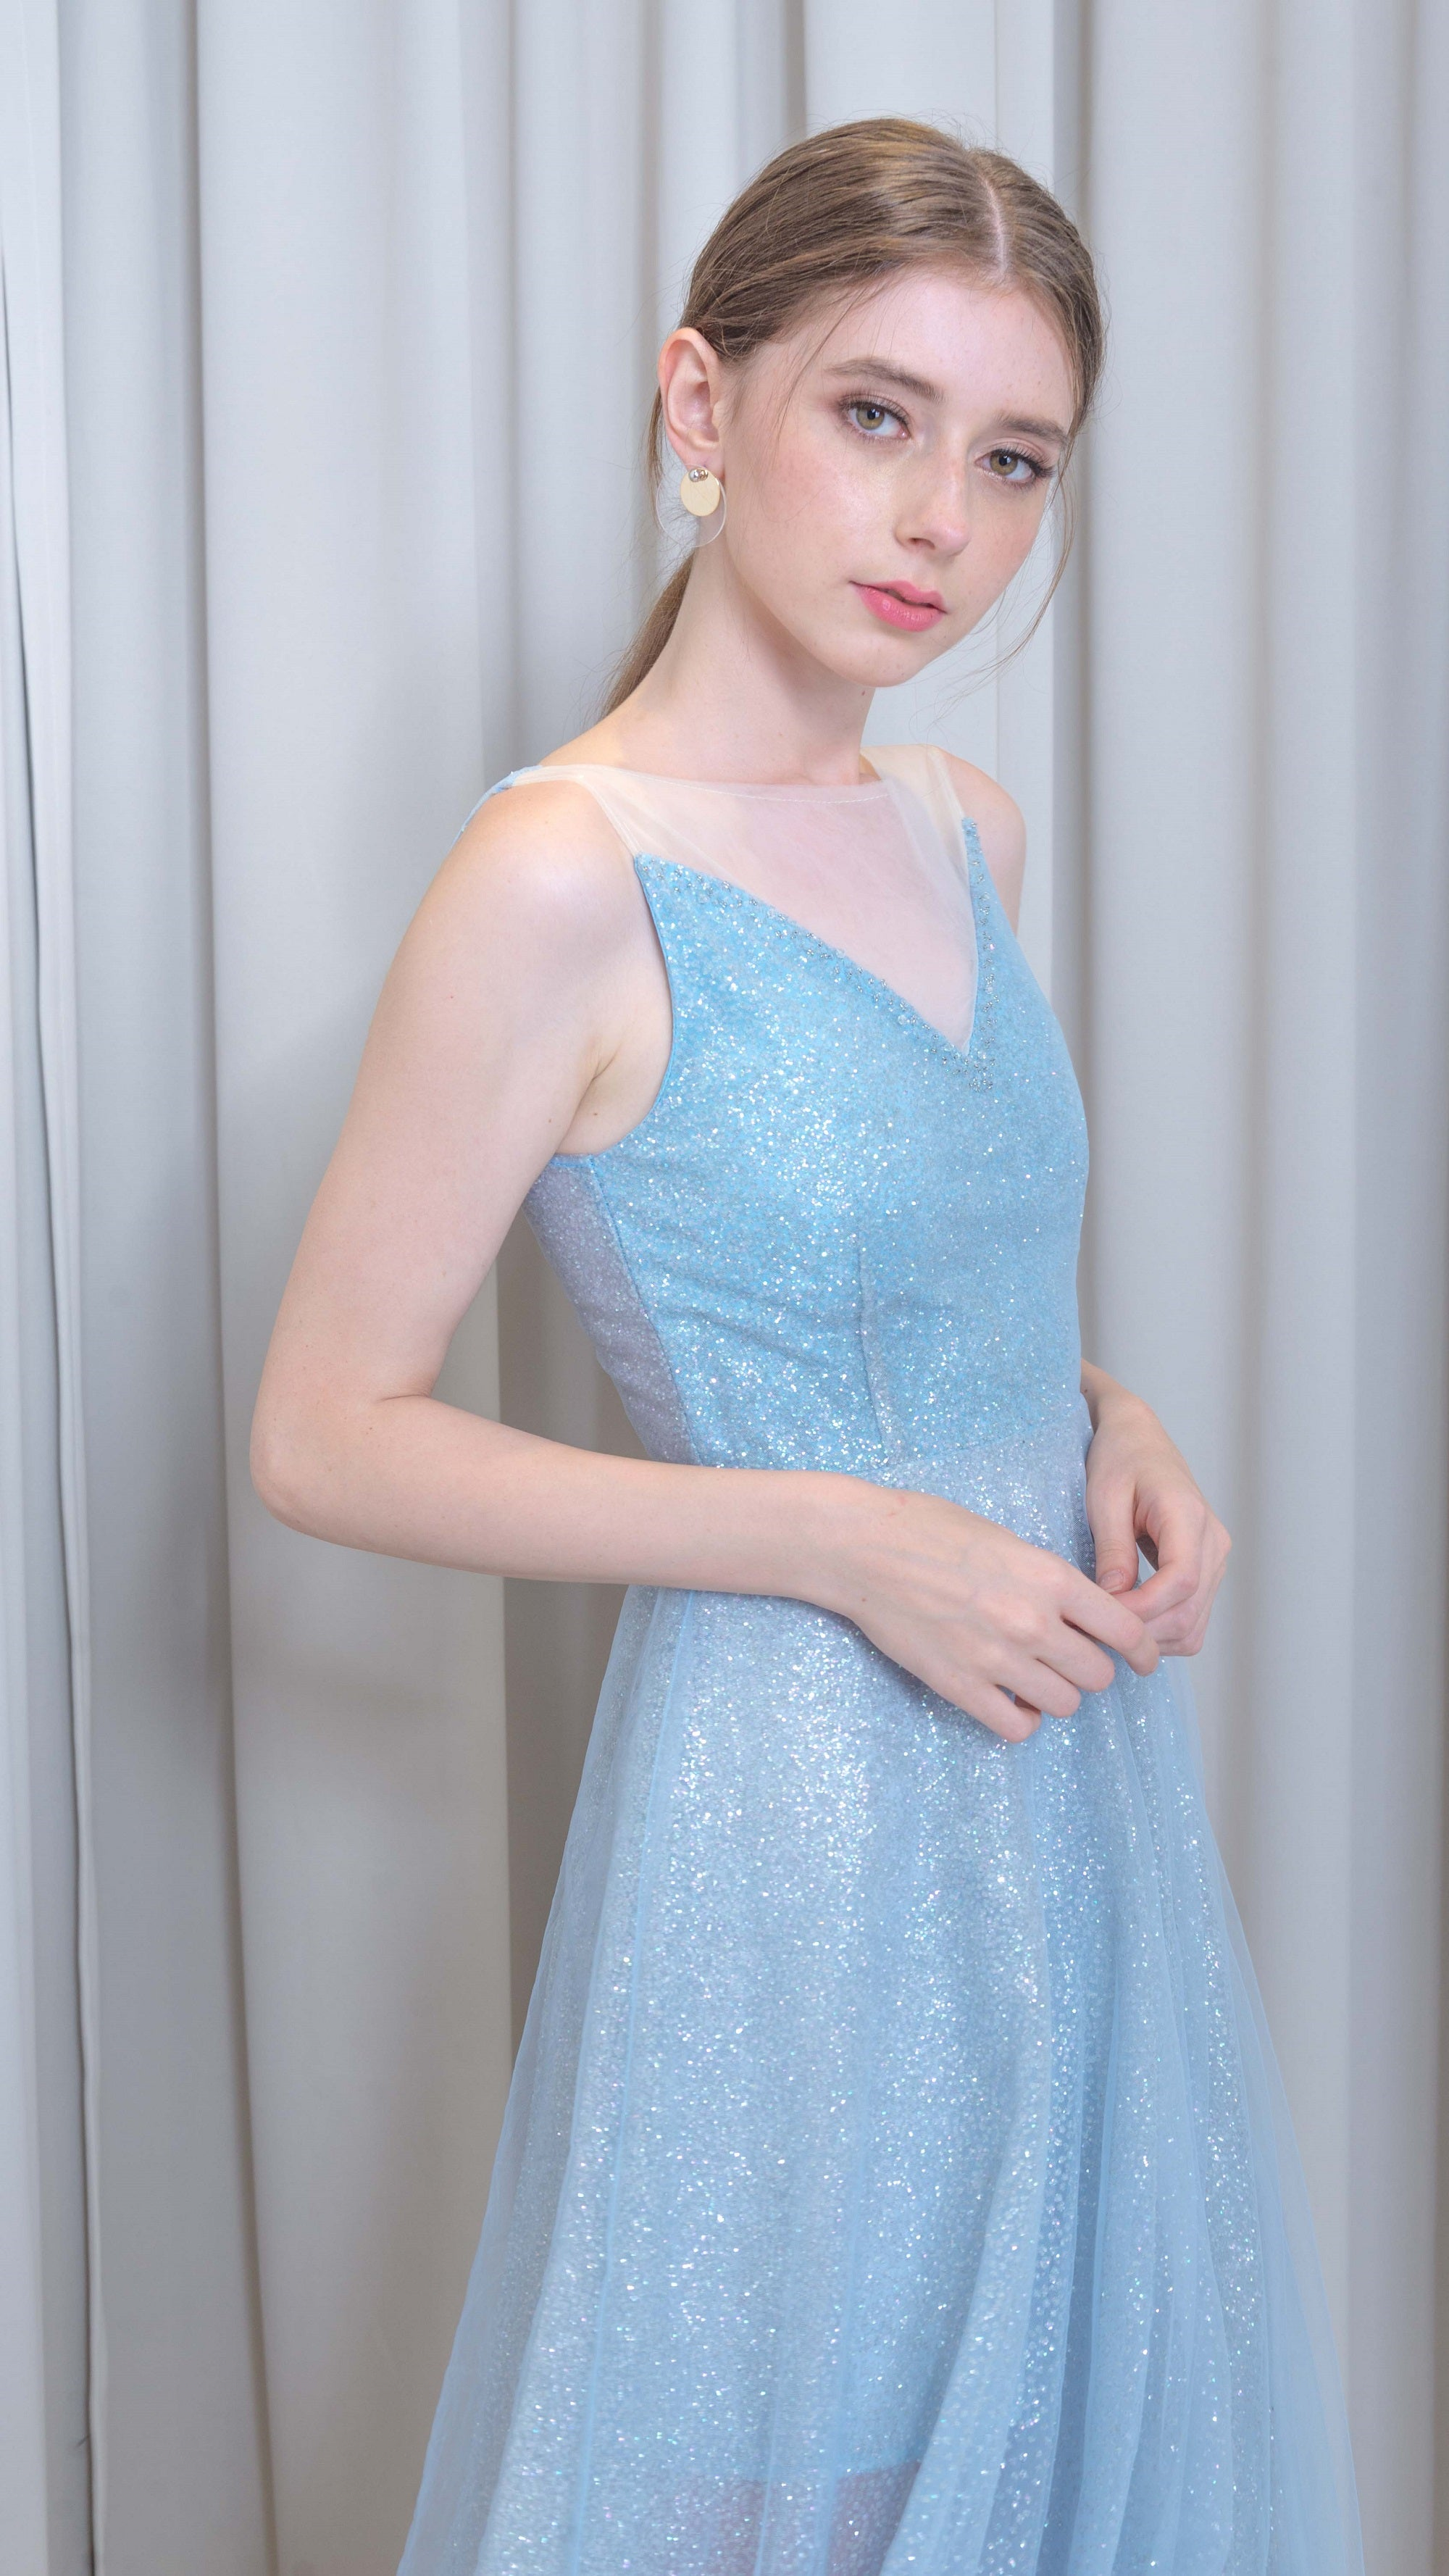 Lite Cinderella Glitz Dress